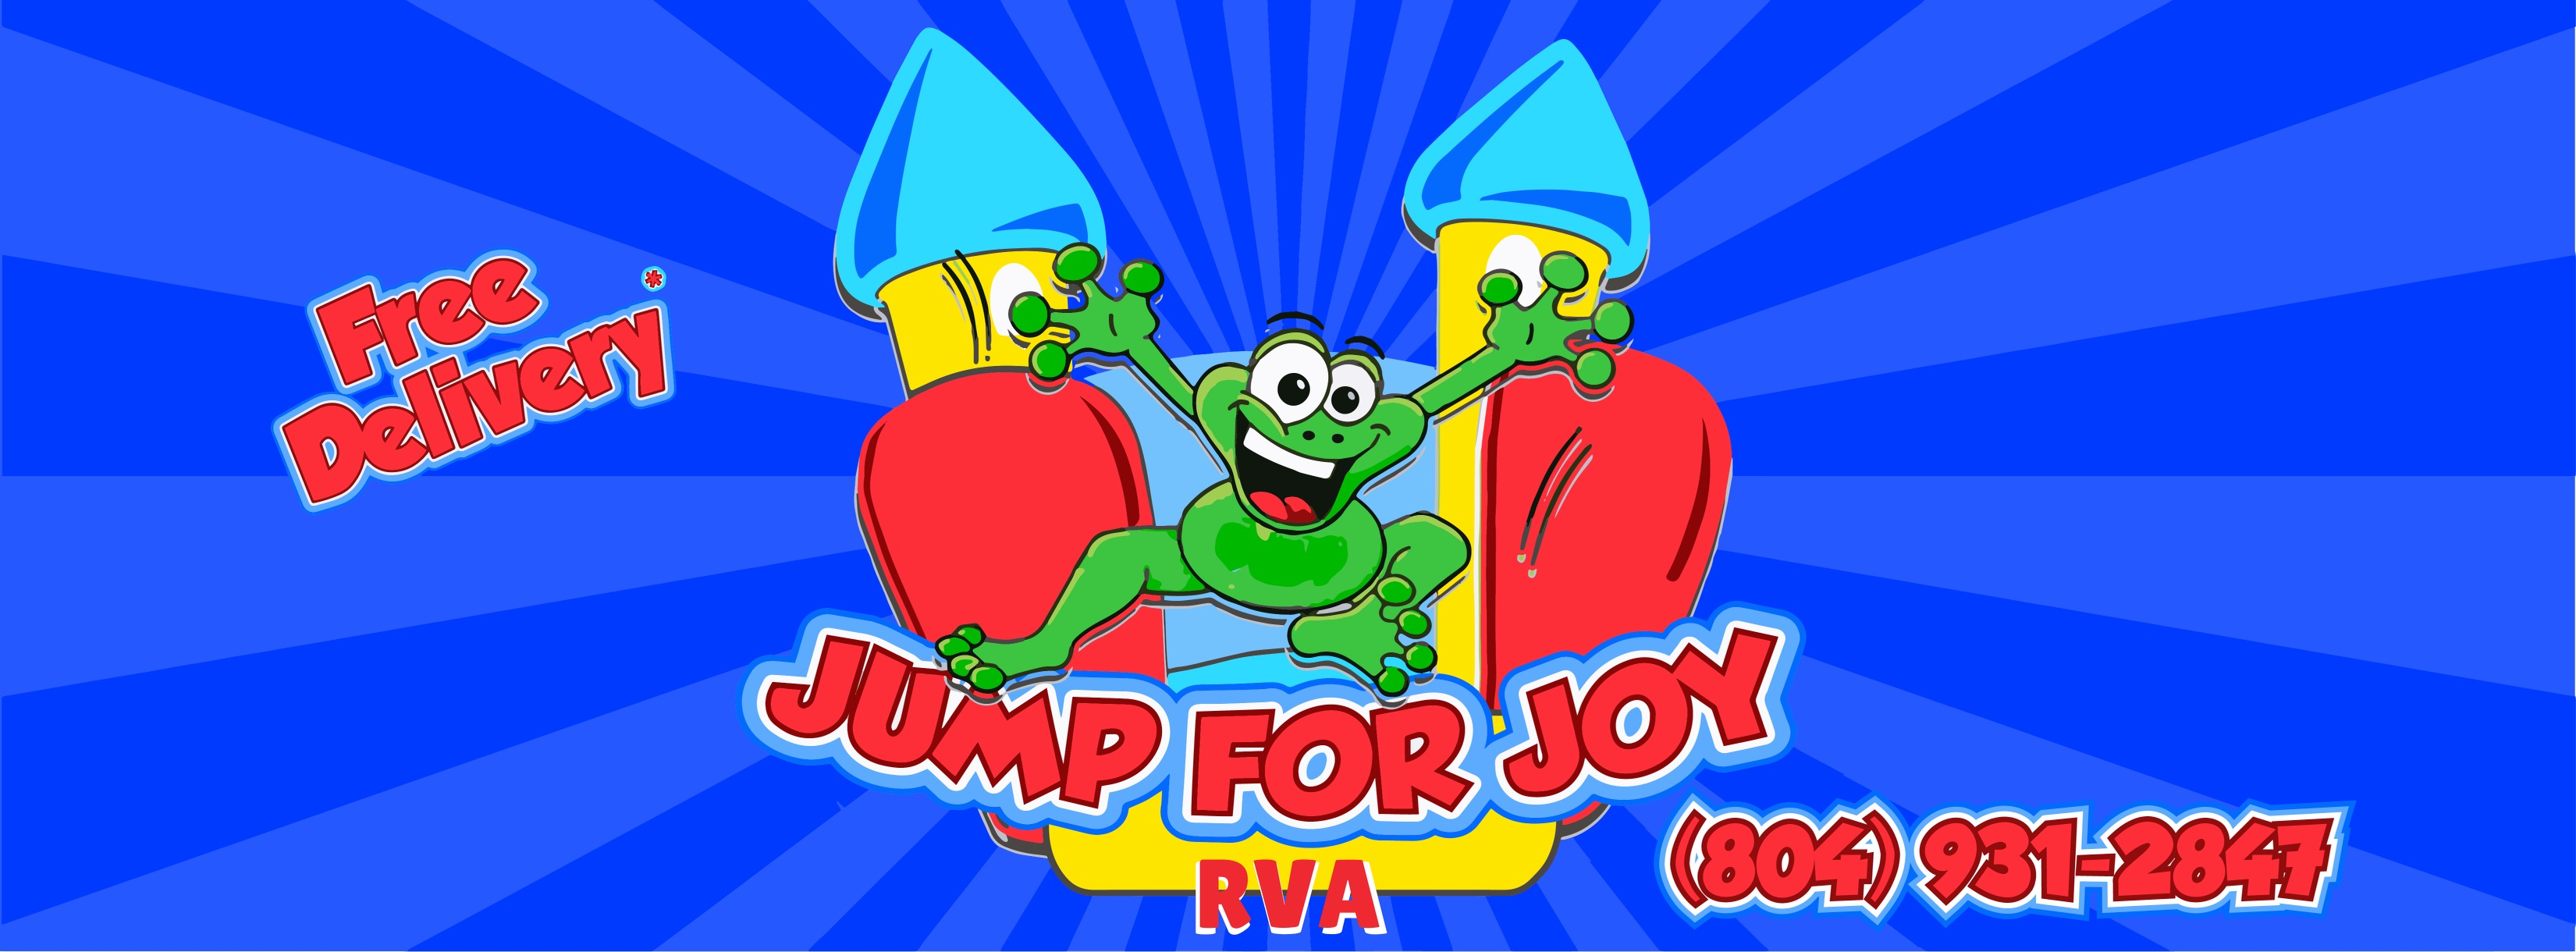 Jump For Joy RVA